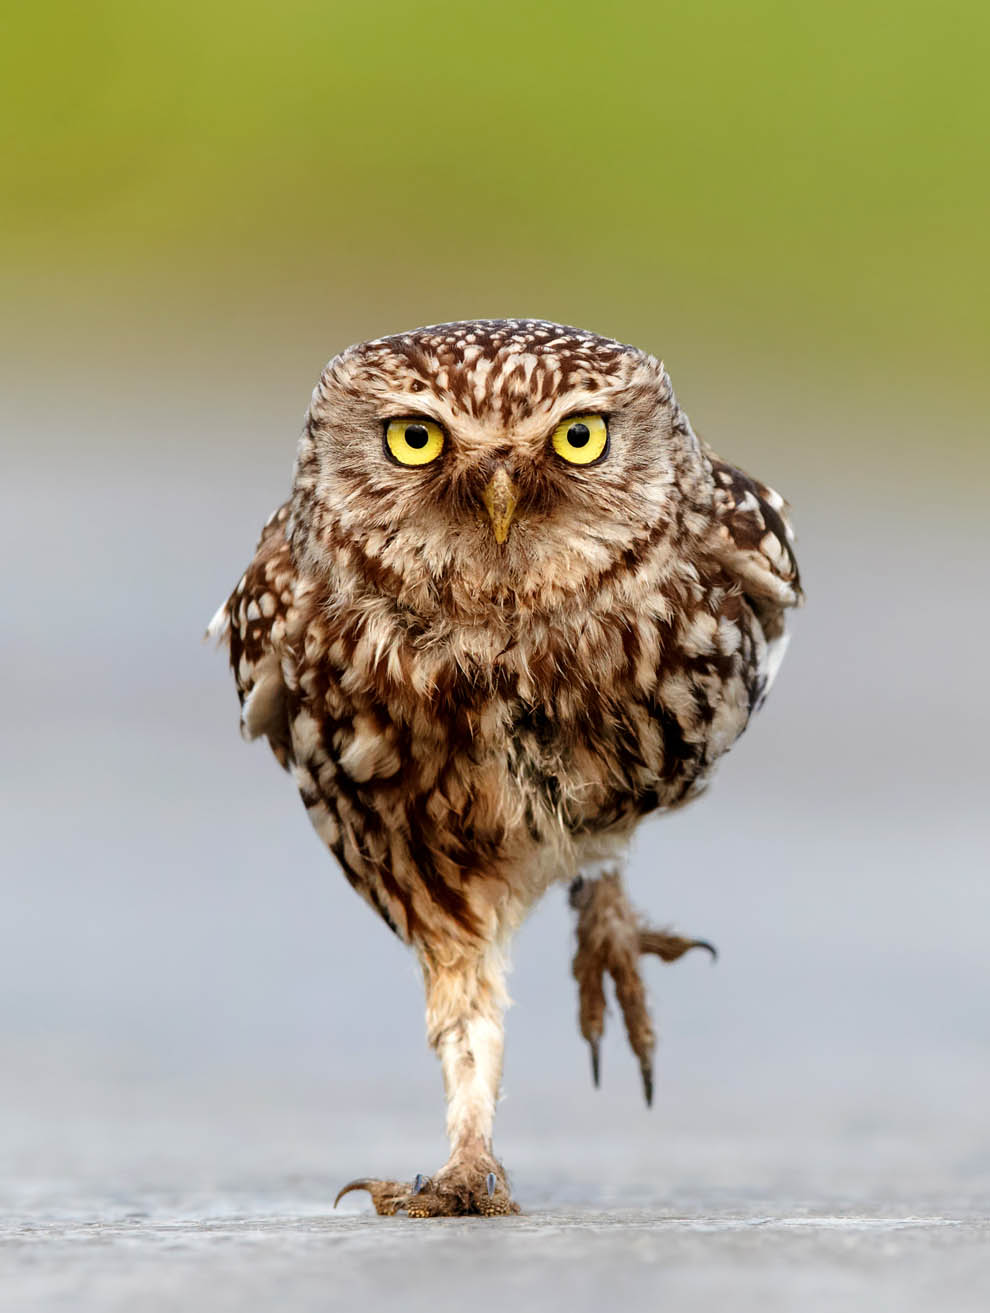 Marching Owls